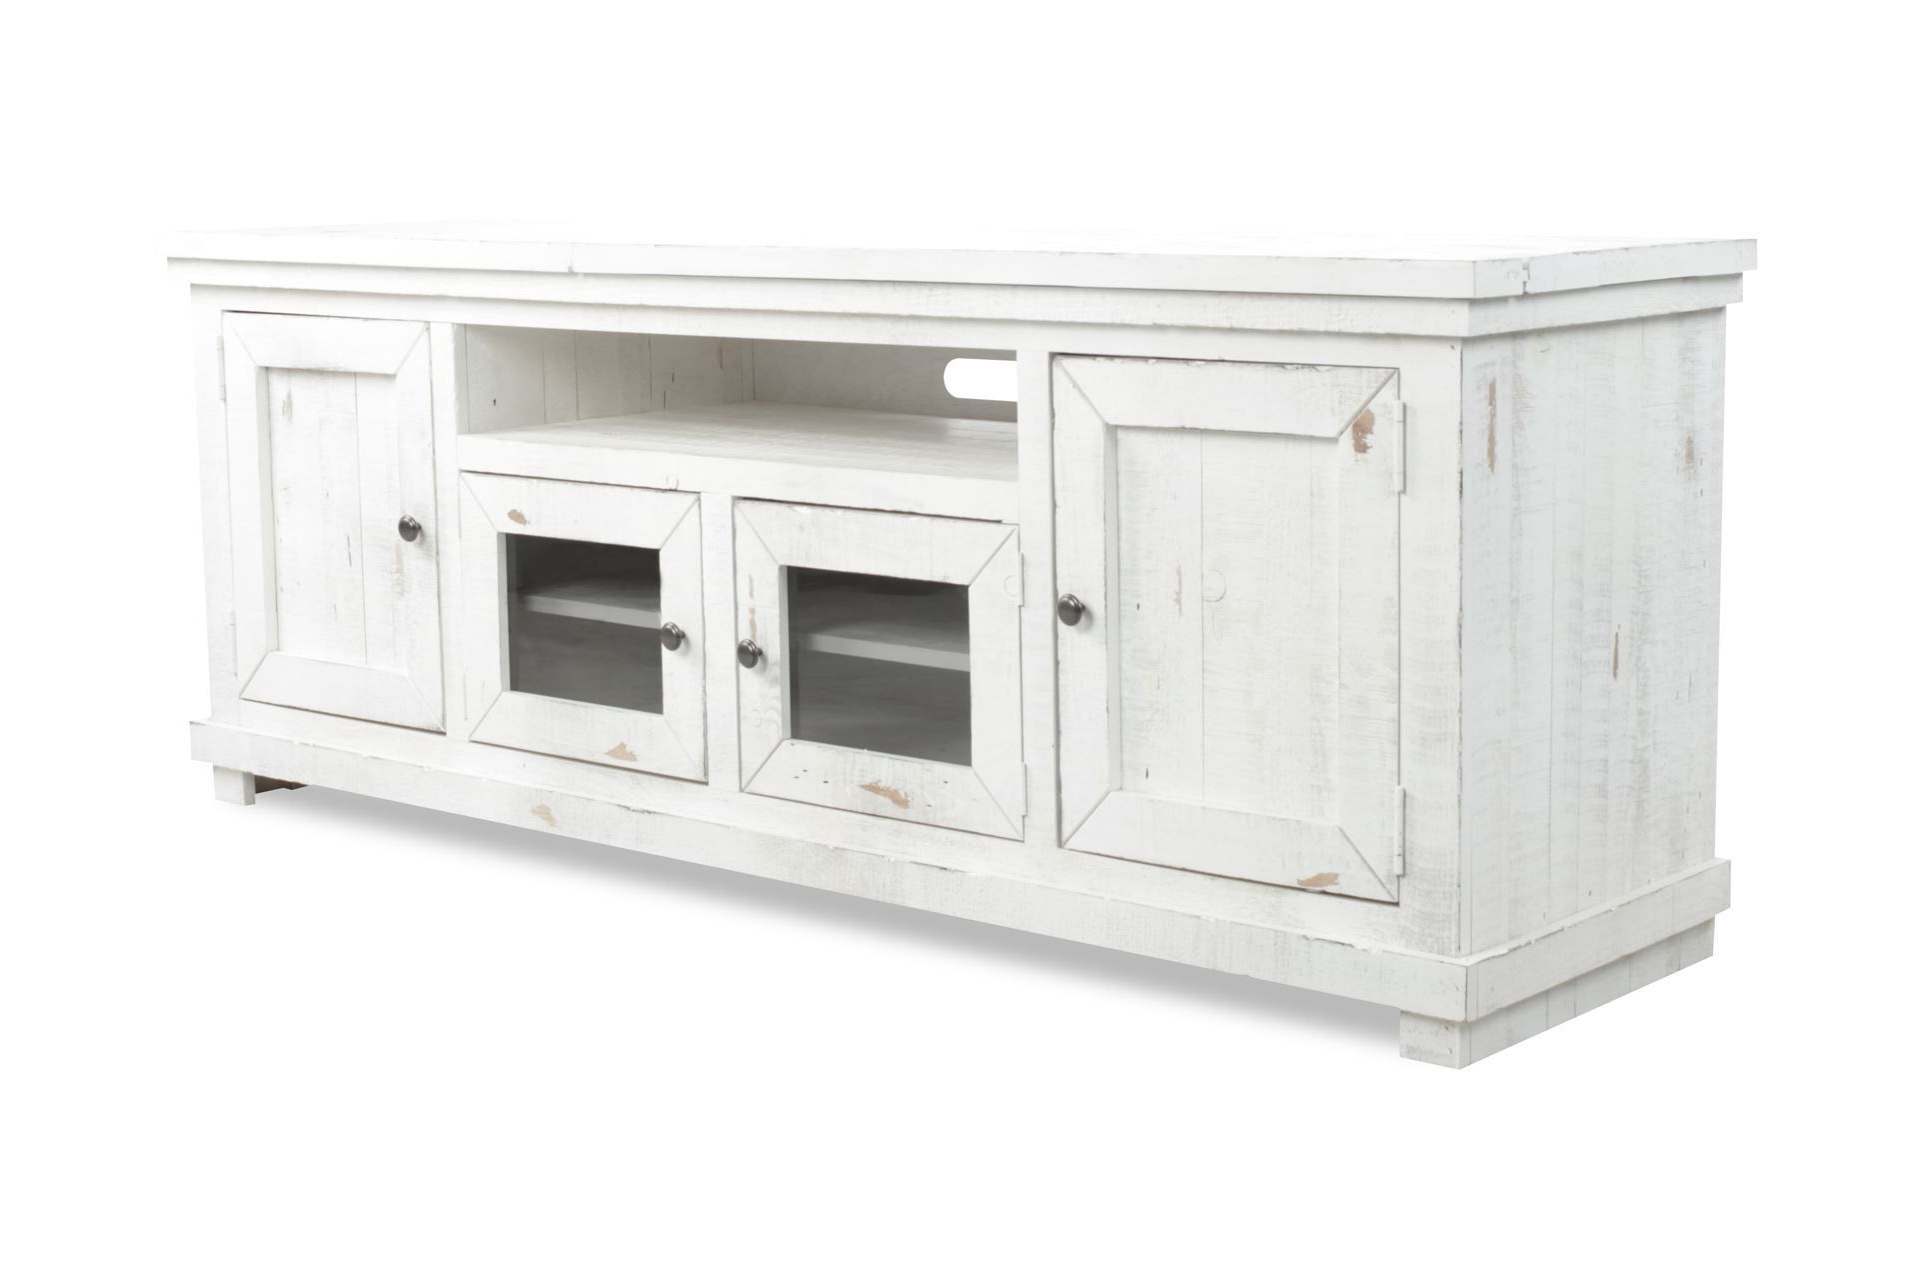 Sinclair White 74 Inch Tv Stand | Home Ideas | Pinterest | Living Throughout Sinclair Grey 68 Inch Tv Stands (View 6 of 20)